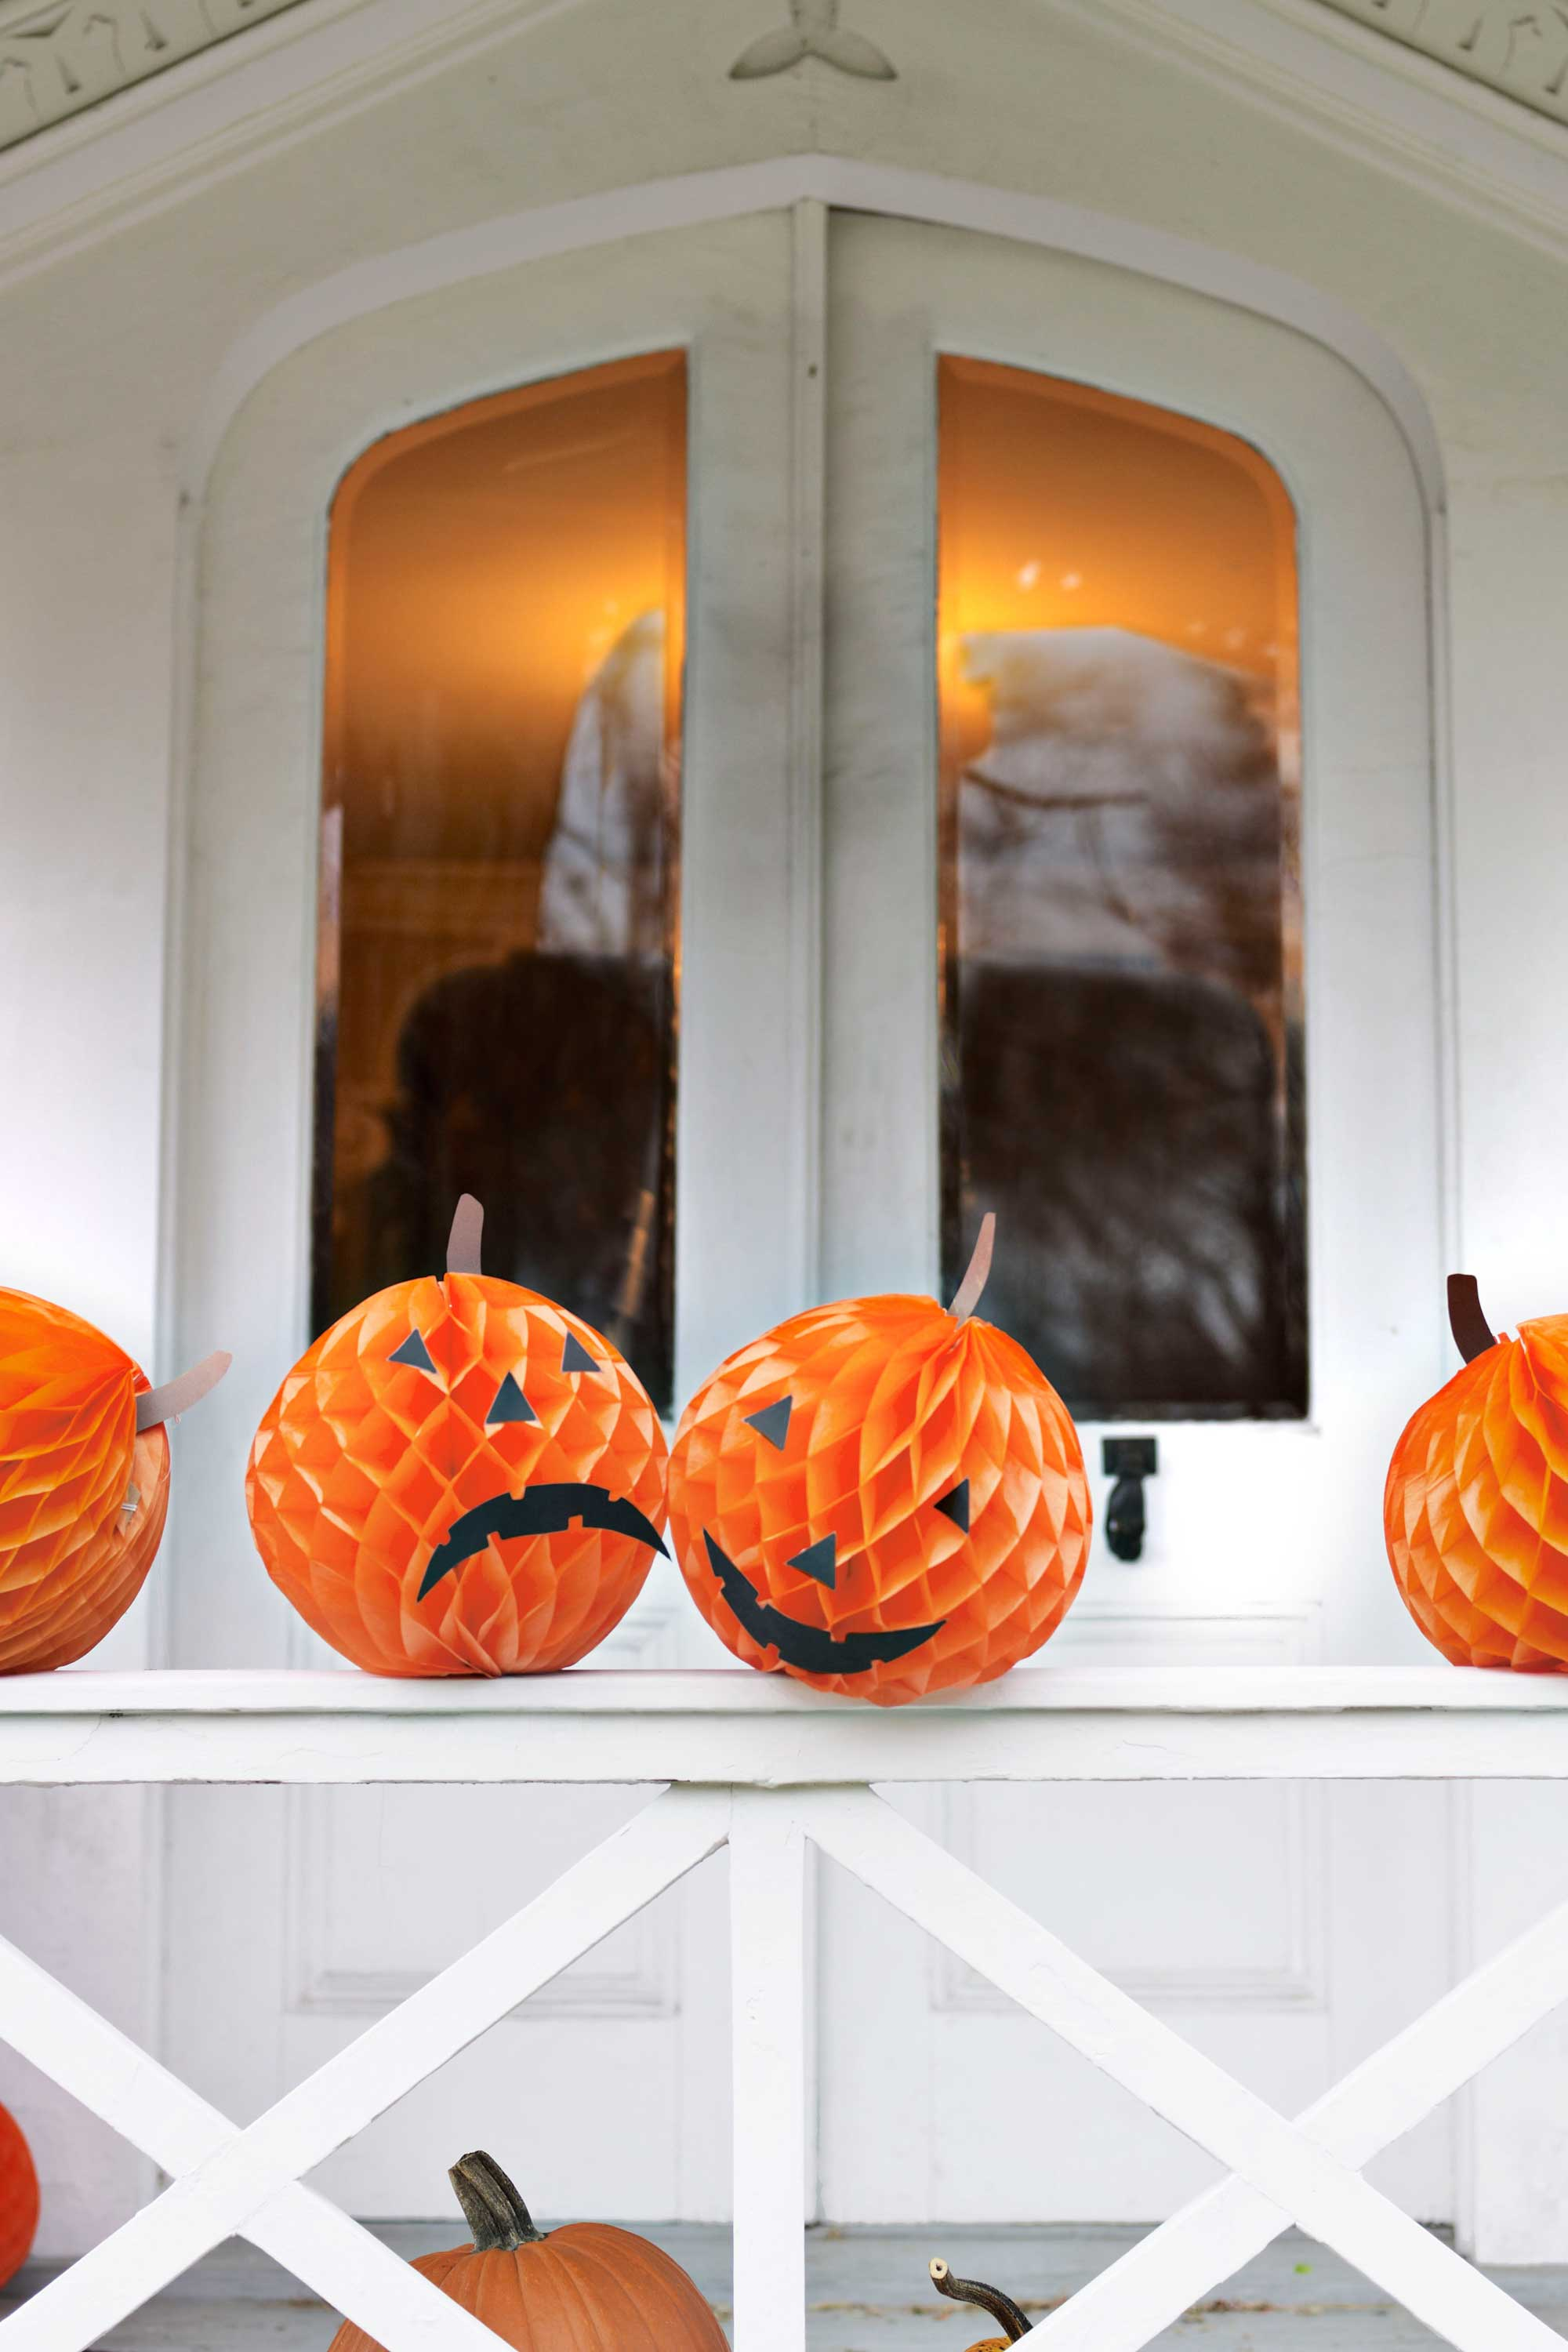 40 easy diy halloween decorations homemade do it yourself halloween decor ideas - Diy Halloween Decorations For Kids